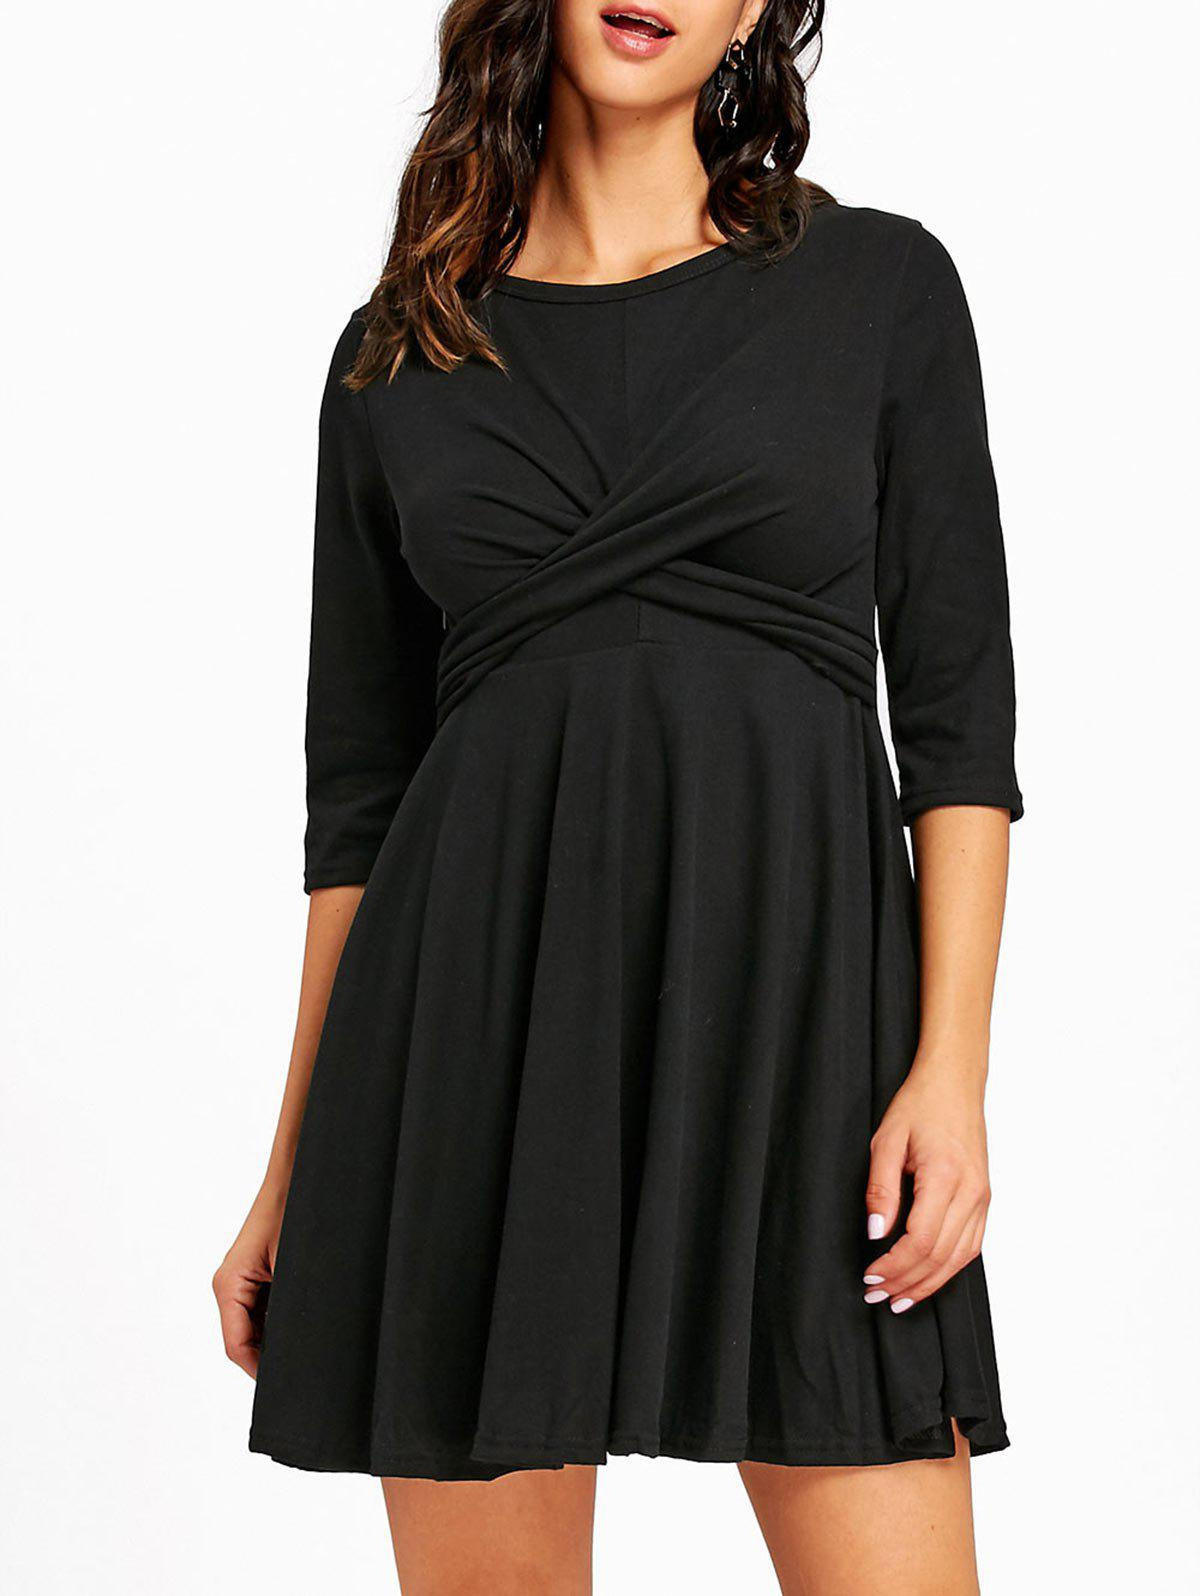 Mini Empire Waist Cross Swing Dress - BLACK S